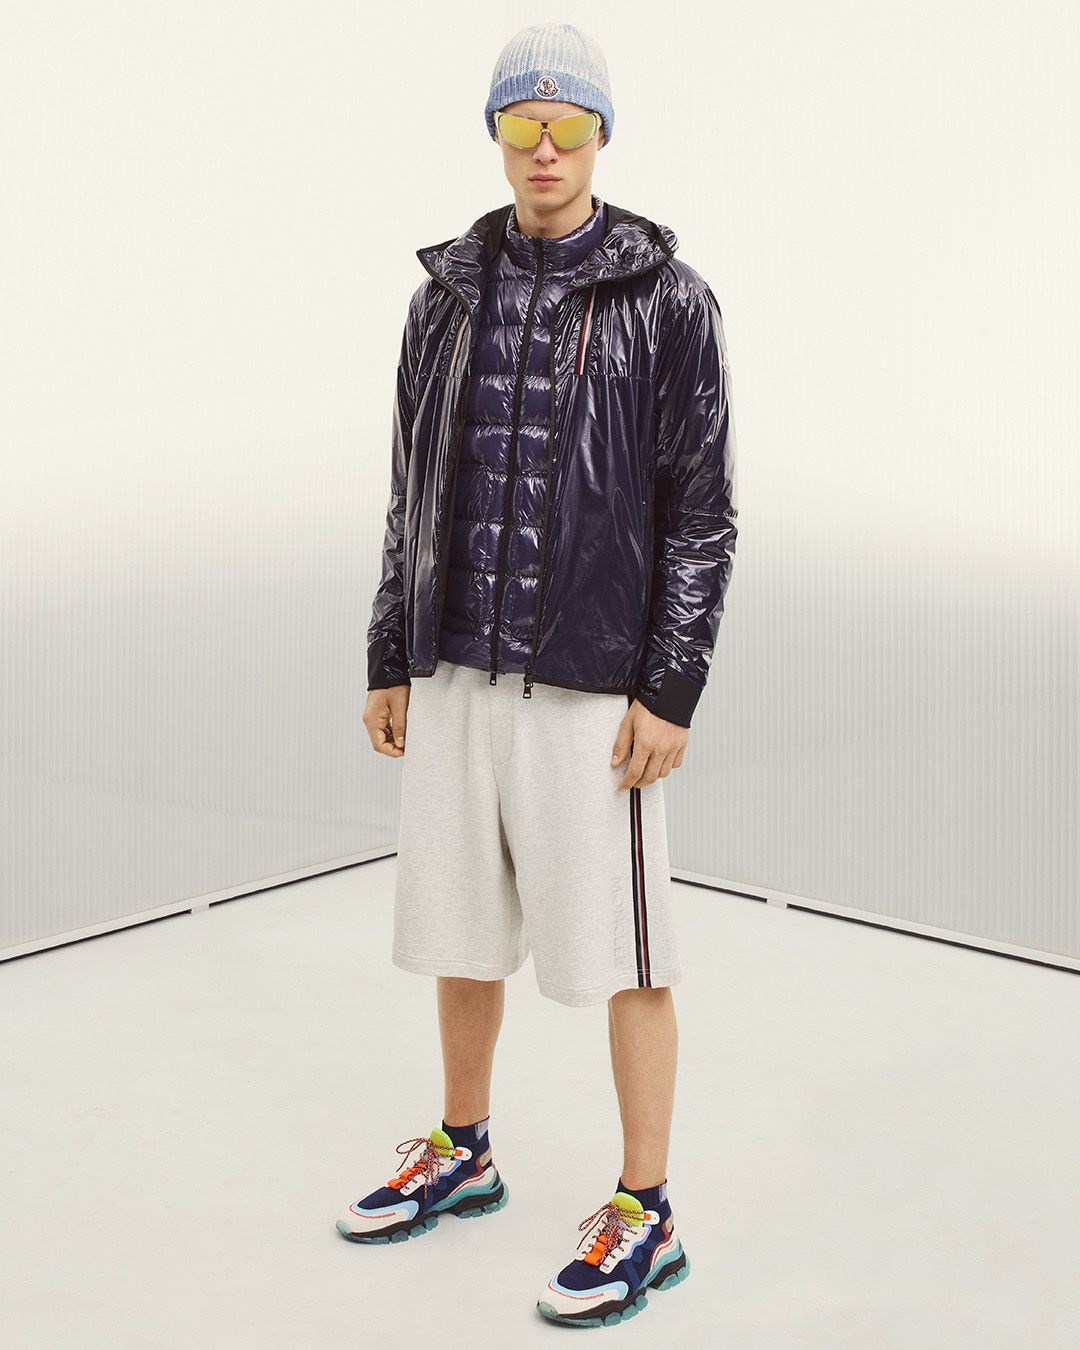 MONCLER COLLECTION SS21 HOLDING COURT from Moncler